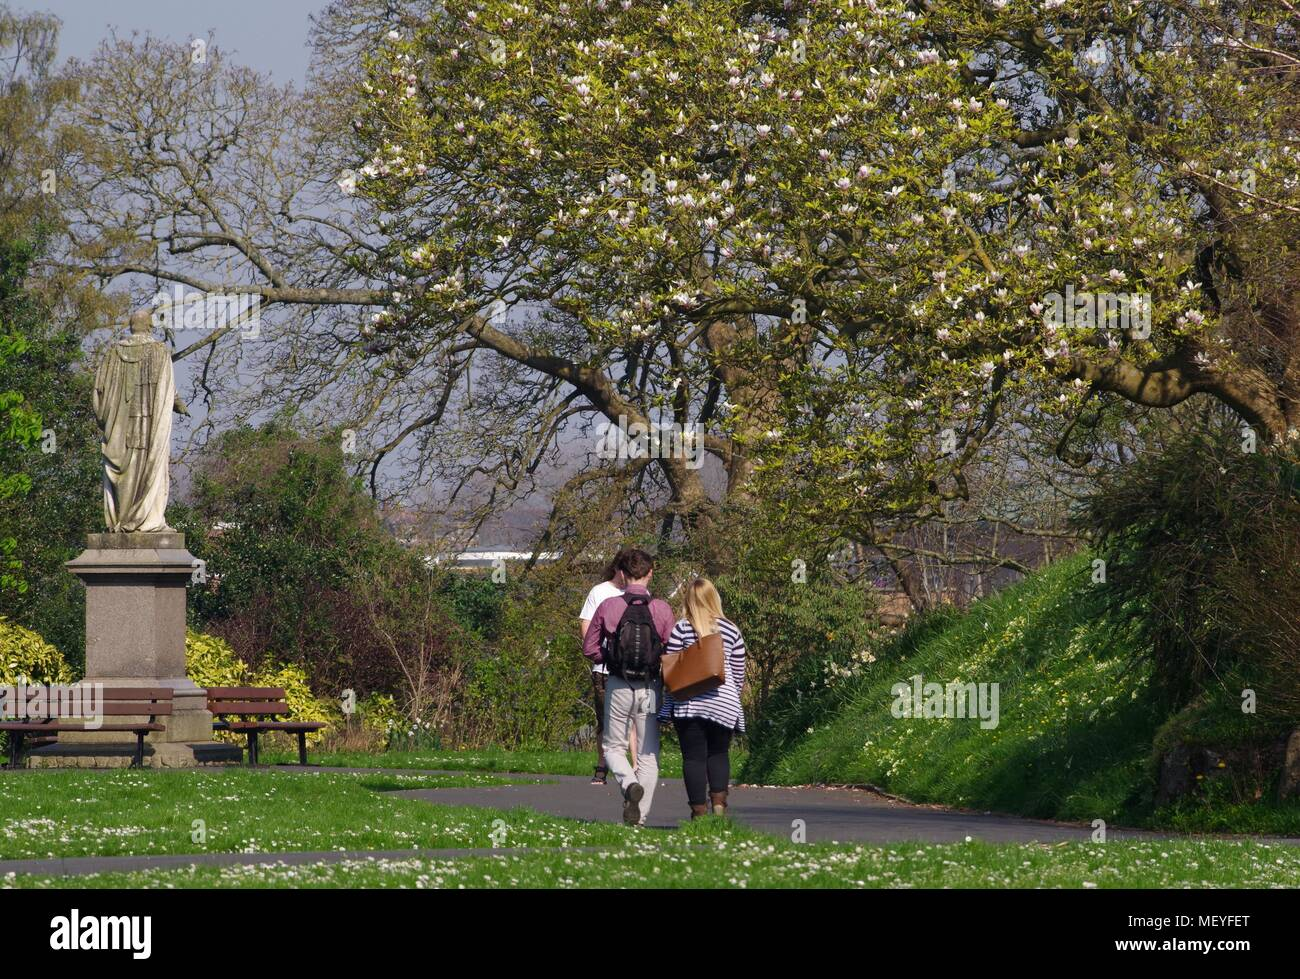 Northernhay Park Stock Photos & Northernhay Park Stock Images - Alamy